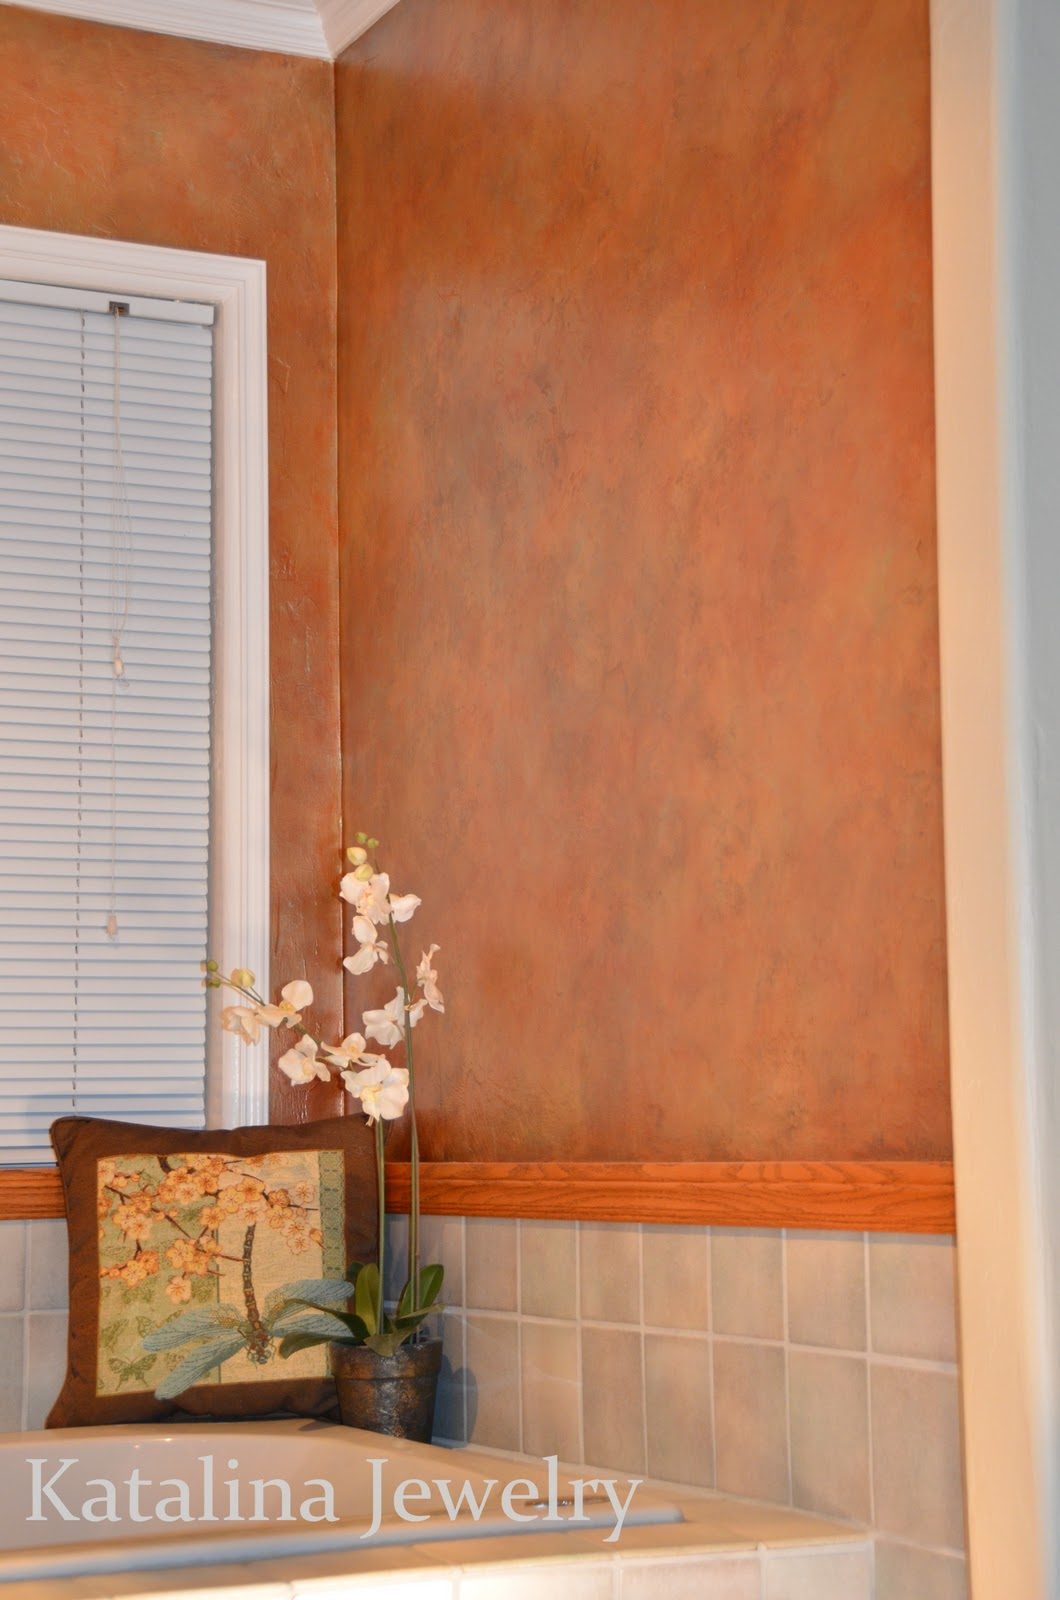 katalina jewelry aged copper wall treatment